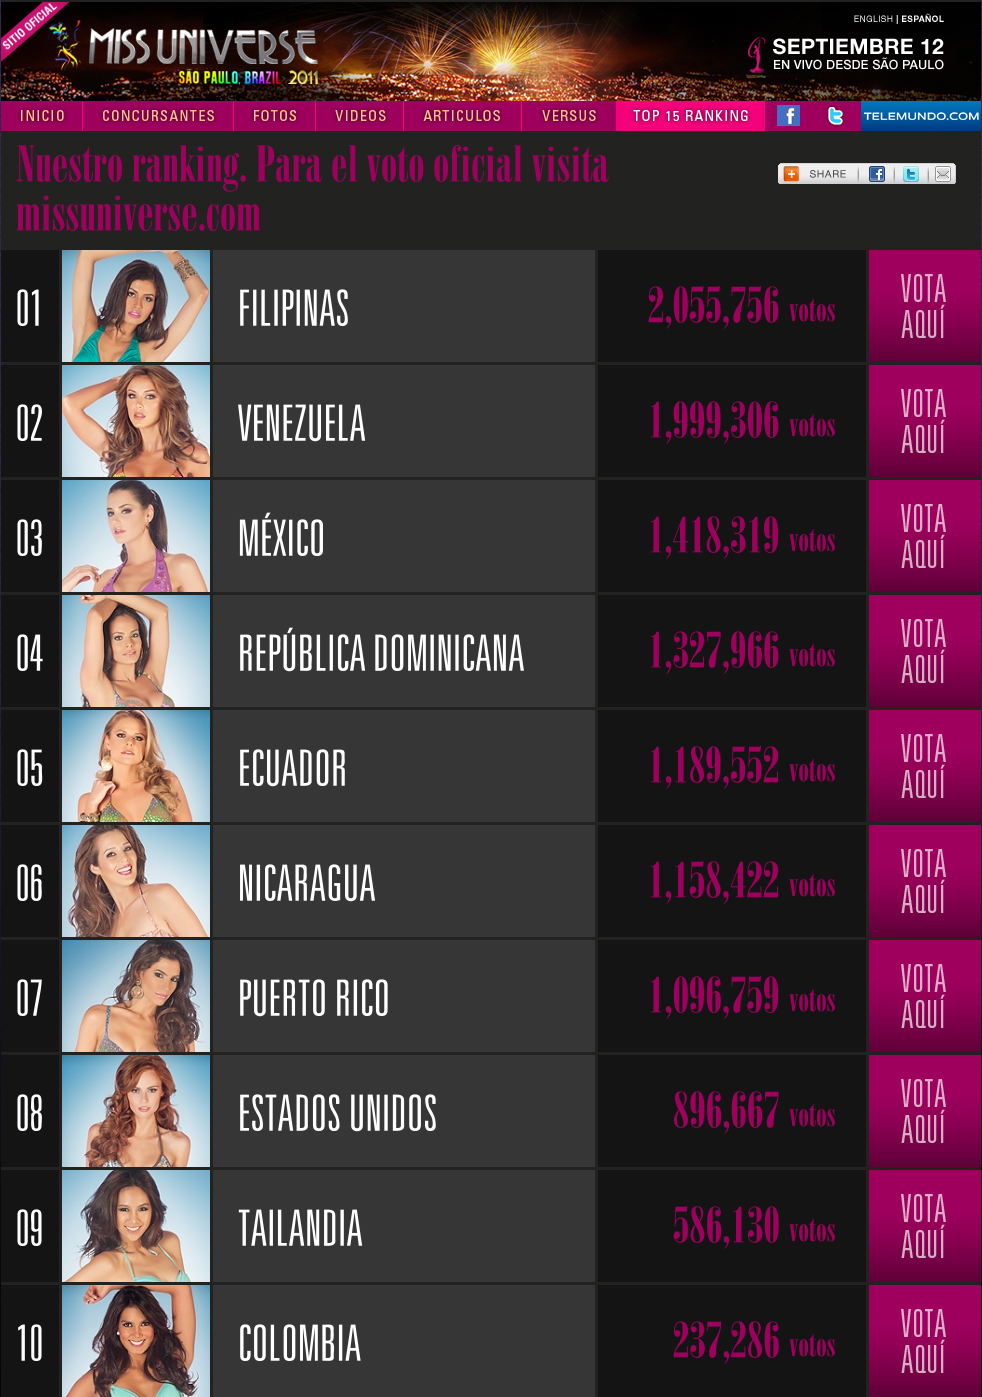 ... Telemundo has revealed the results of its online poll for the Miss